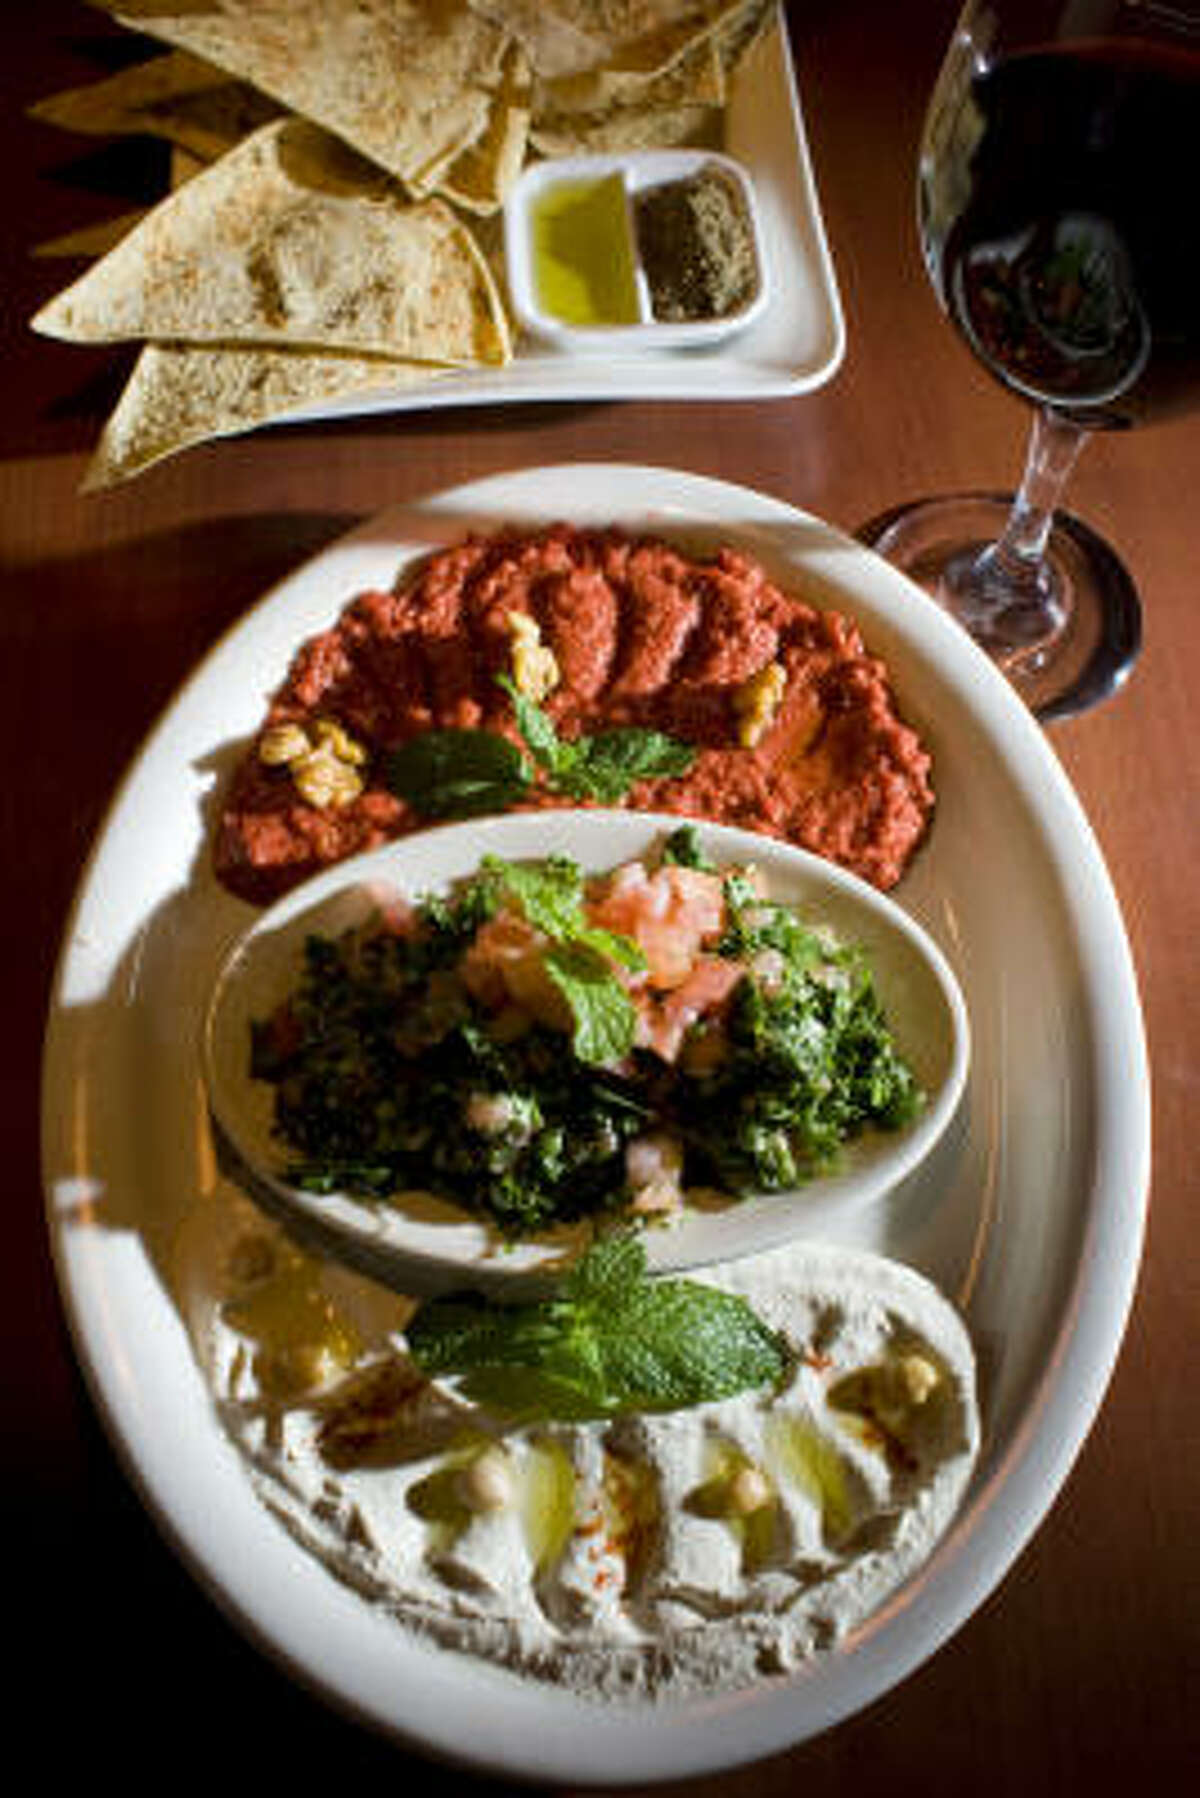 The Pick Three appetizer at Cafe Mezza offers some of the best menu items at the Syrian restaurant on Westheimer.